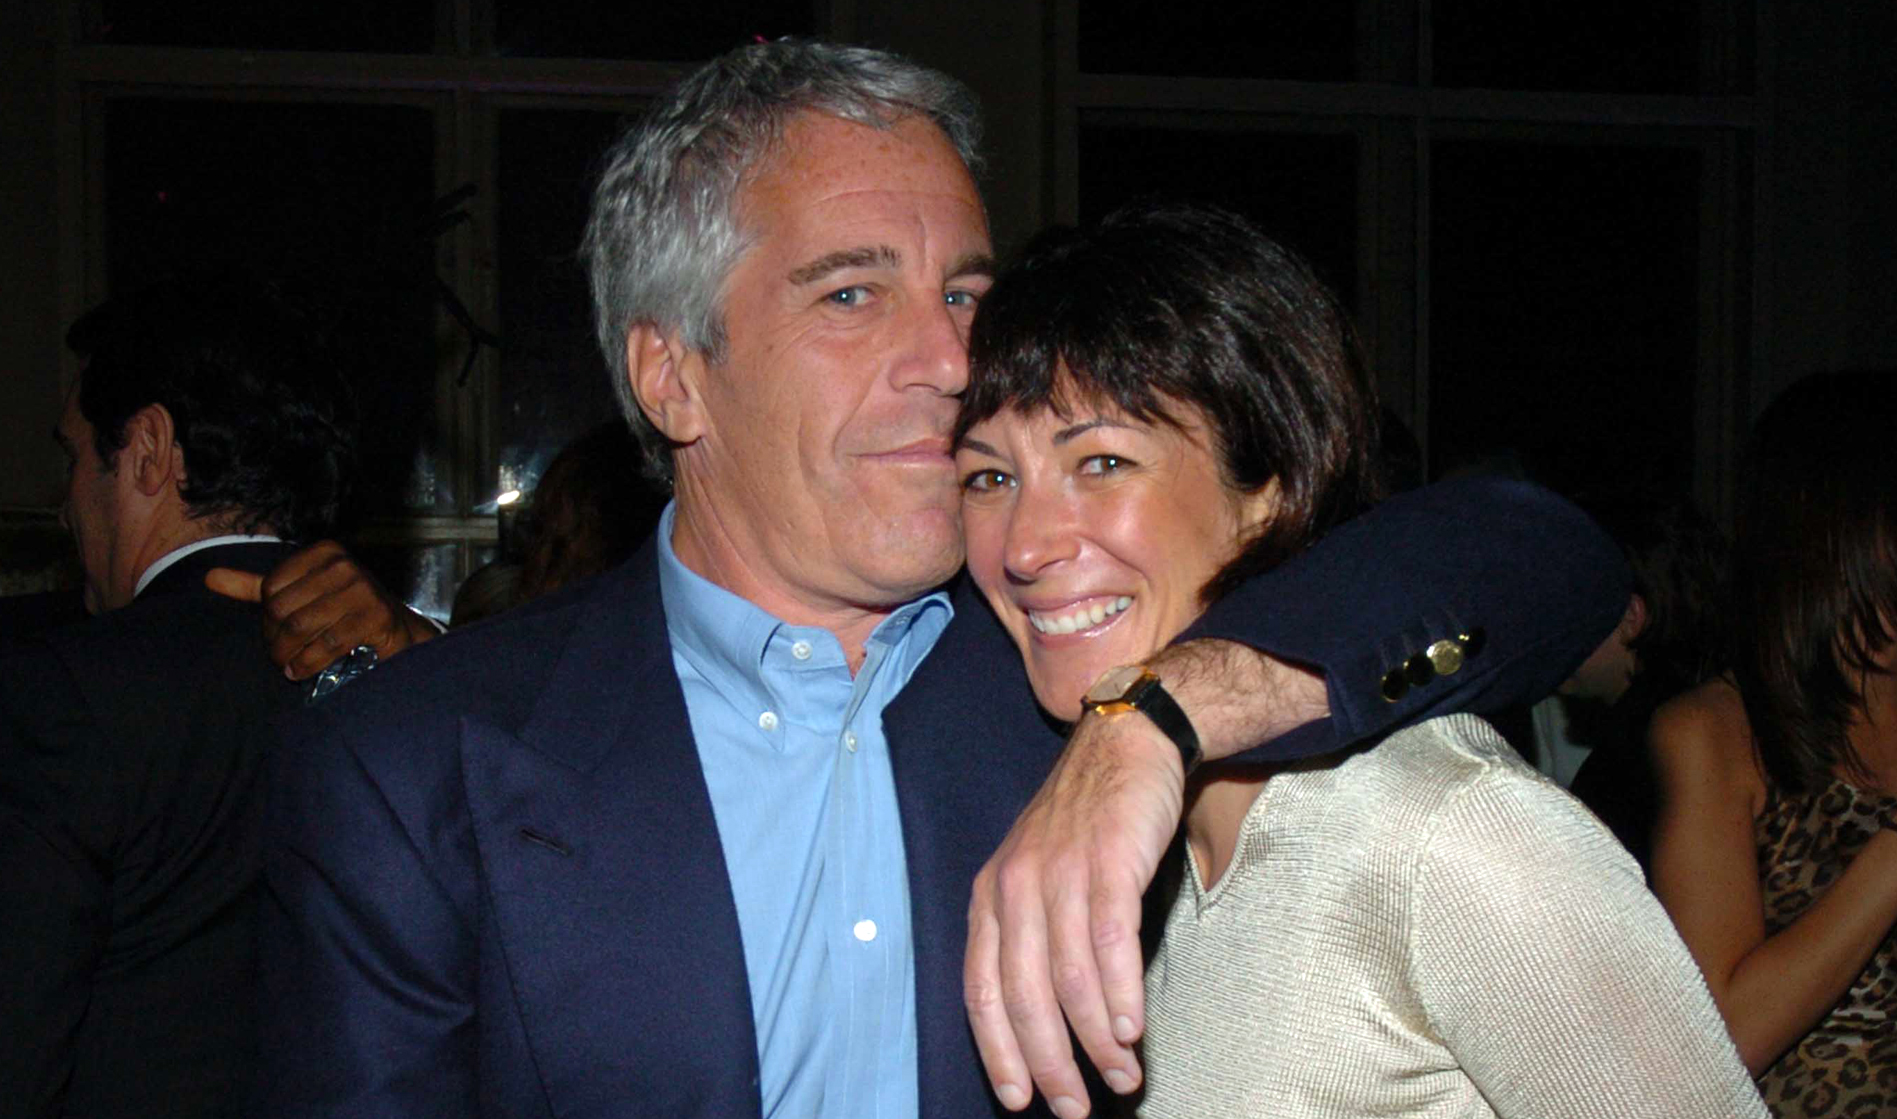 Jeffrey Epstein and Ghislaine Maxwell in New York City in 2005.Joe Schildhorn / Patrick McMullan via Getty Images file